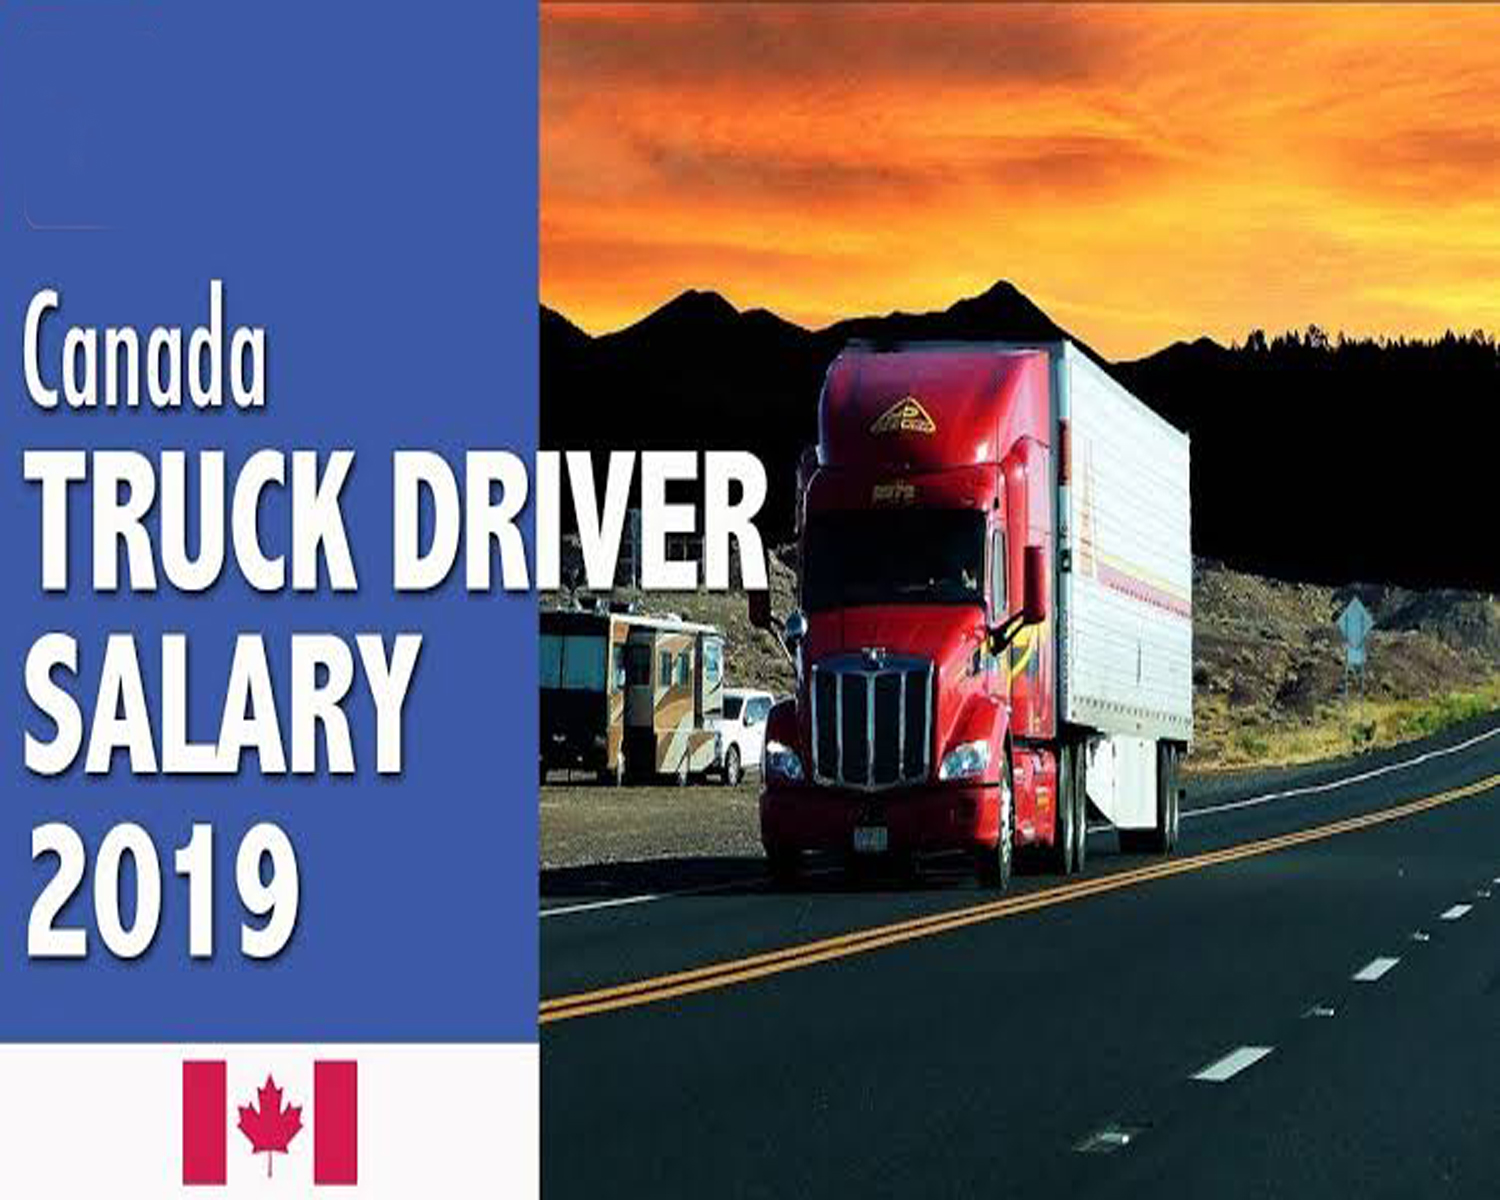 truck driver salary in Canada